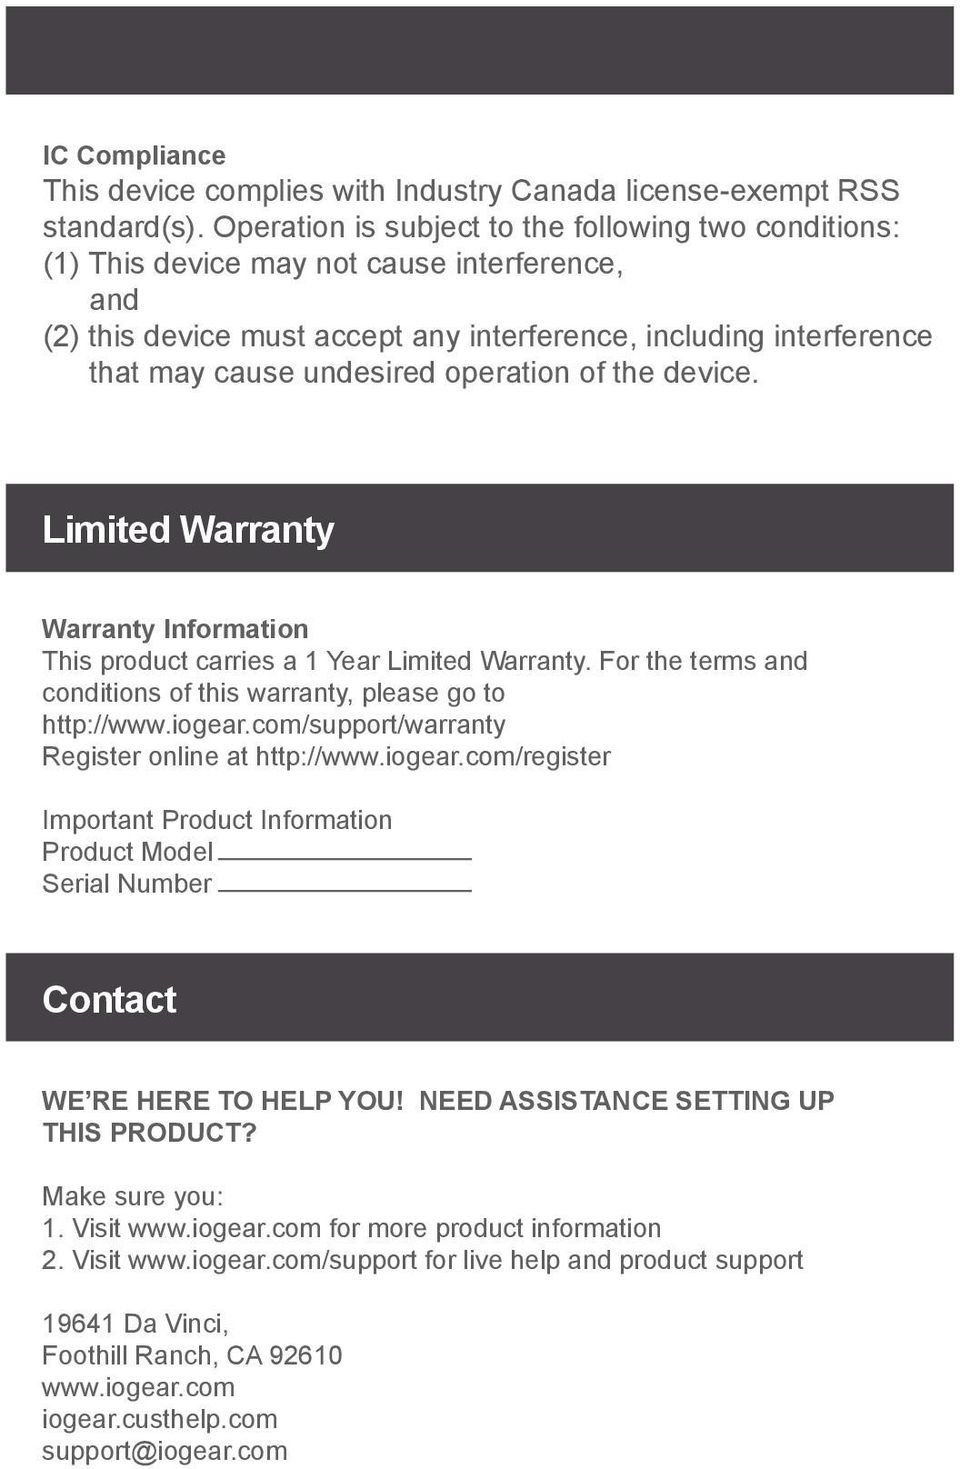 operation of the device. Limited Warranty Warranty Information This product carries a 1 Year Limited Warranty. For the terms and conditions of this warranty, please go to http://www.iogear.